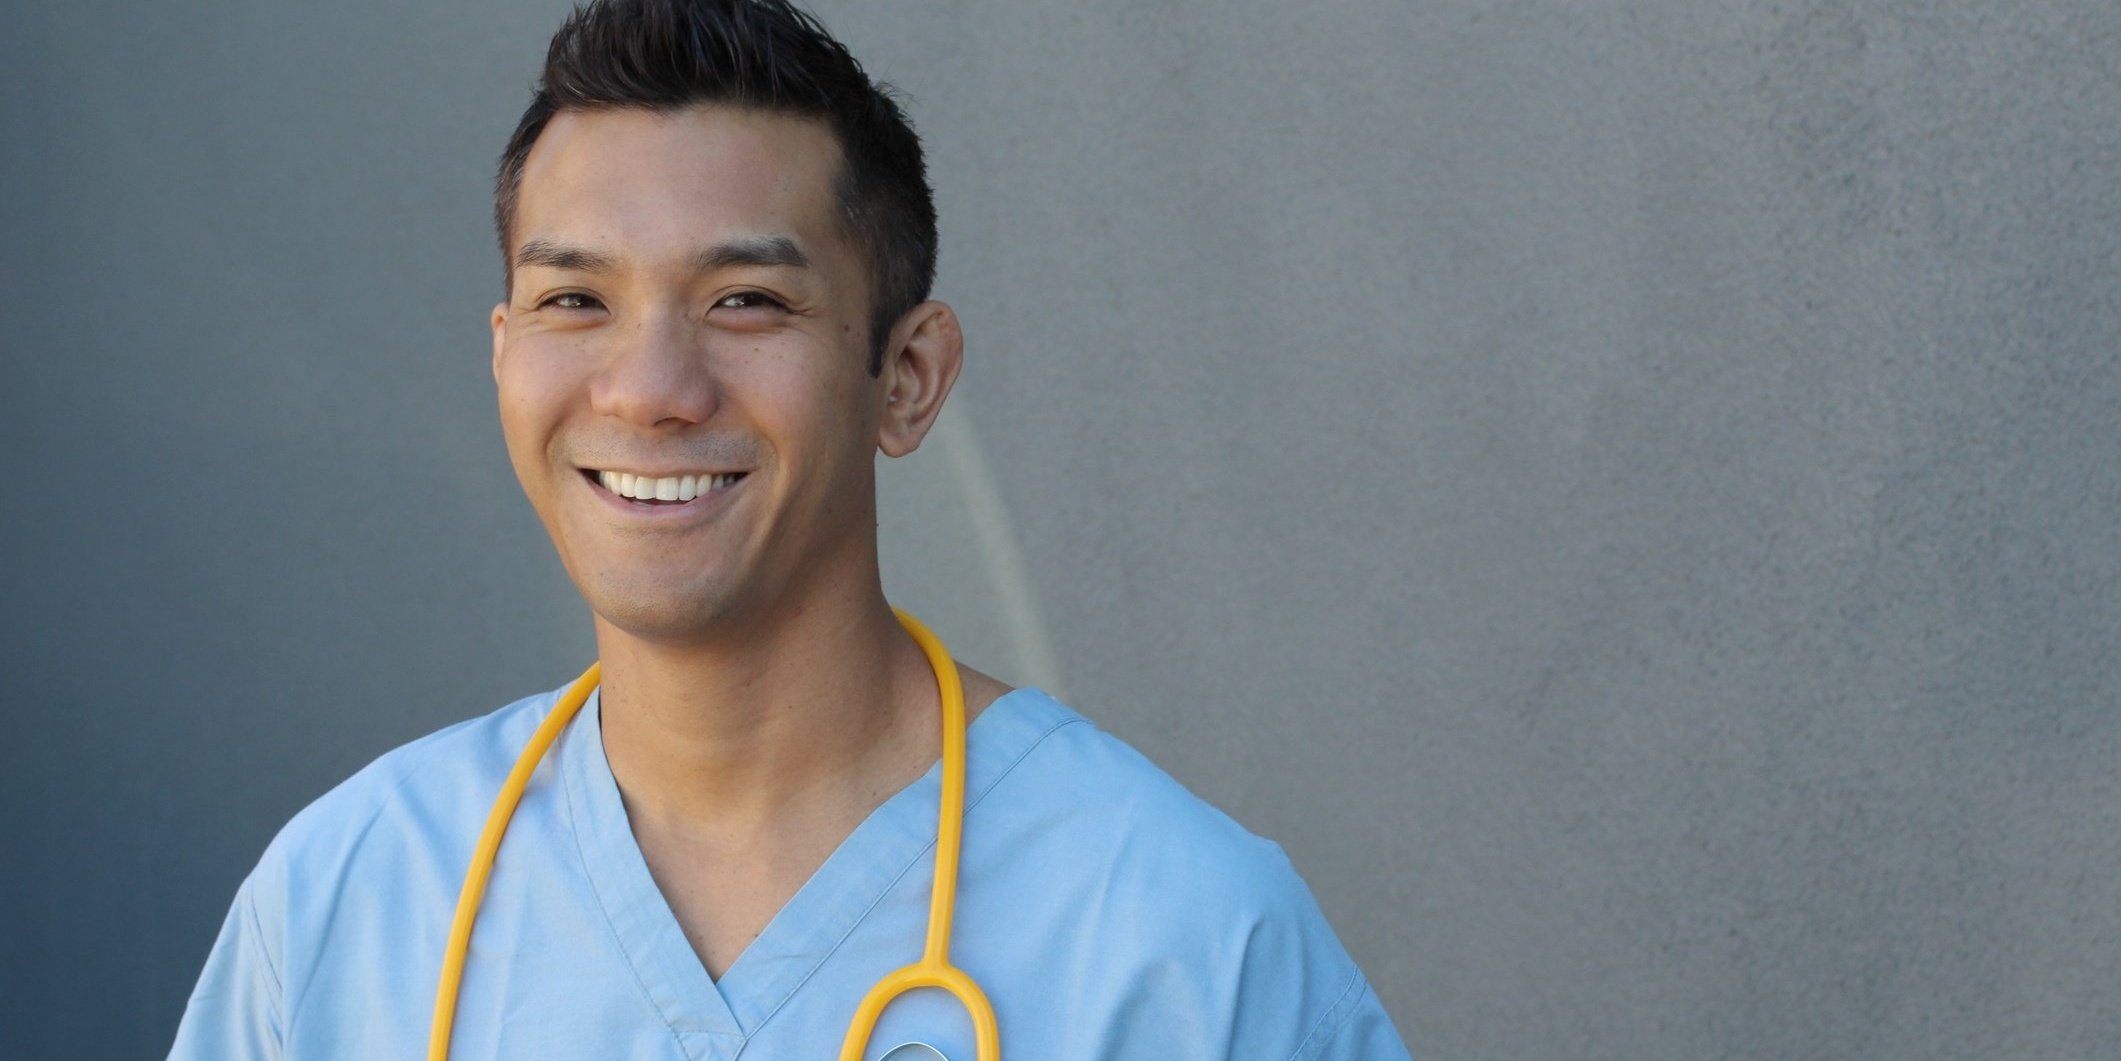 young doctor considering career options